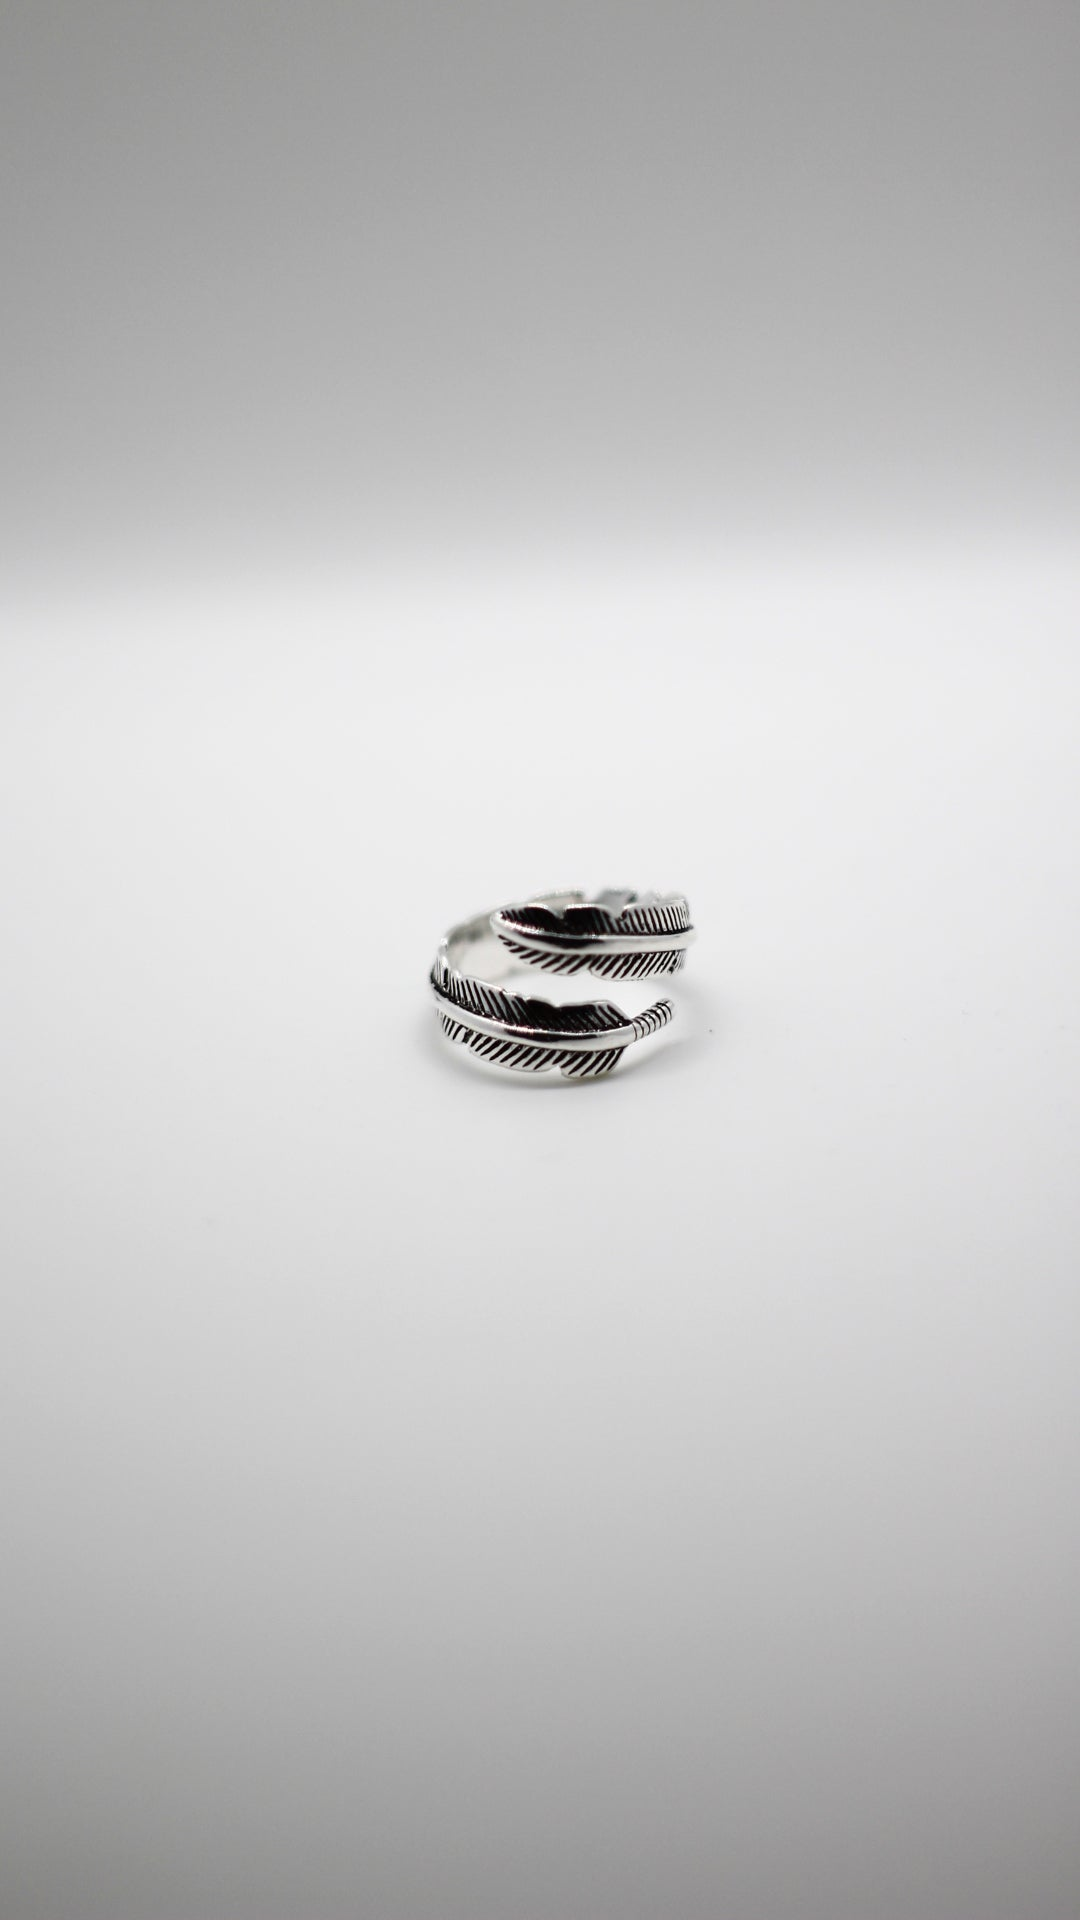 Image of 925 Silver Feather Ring